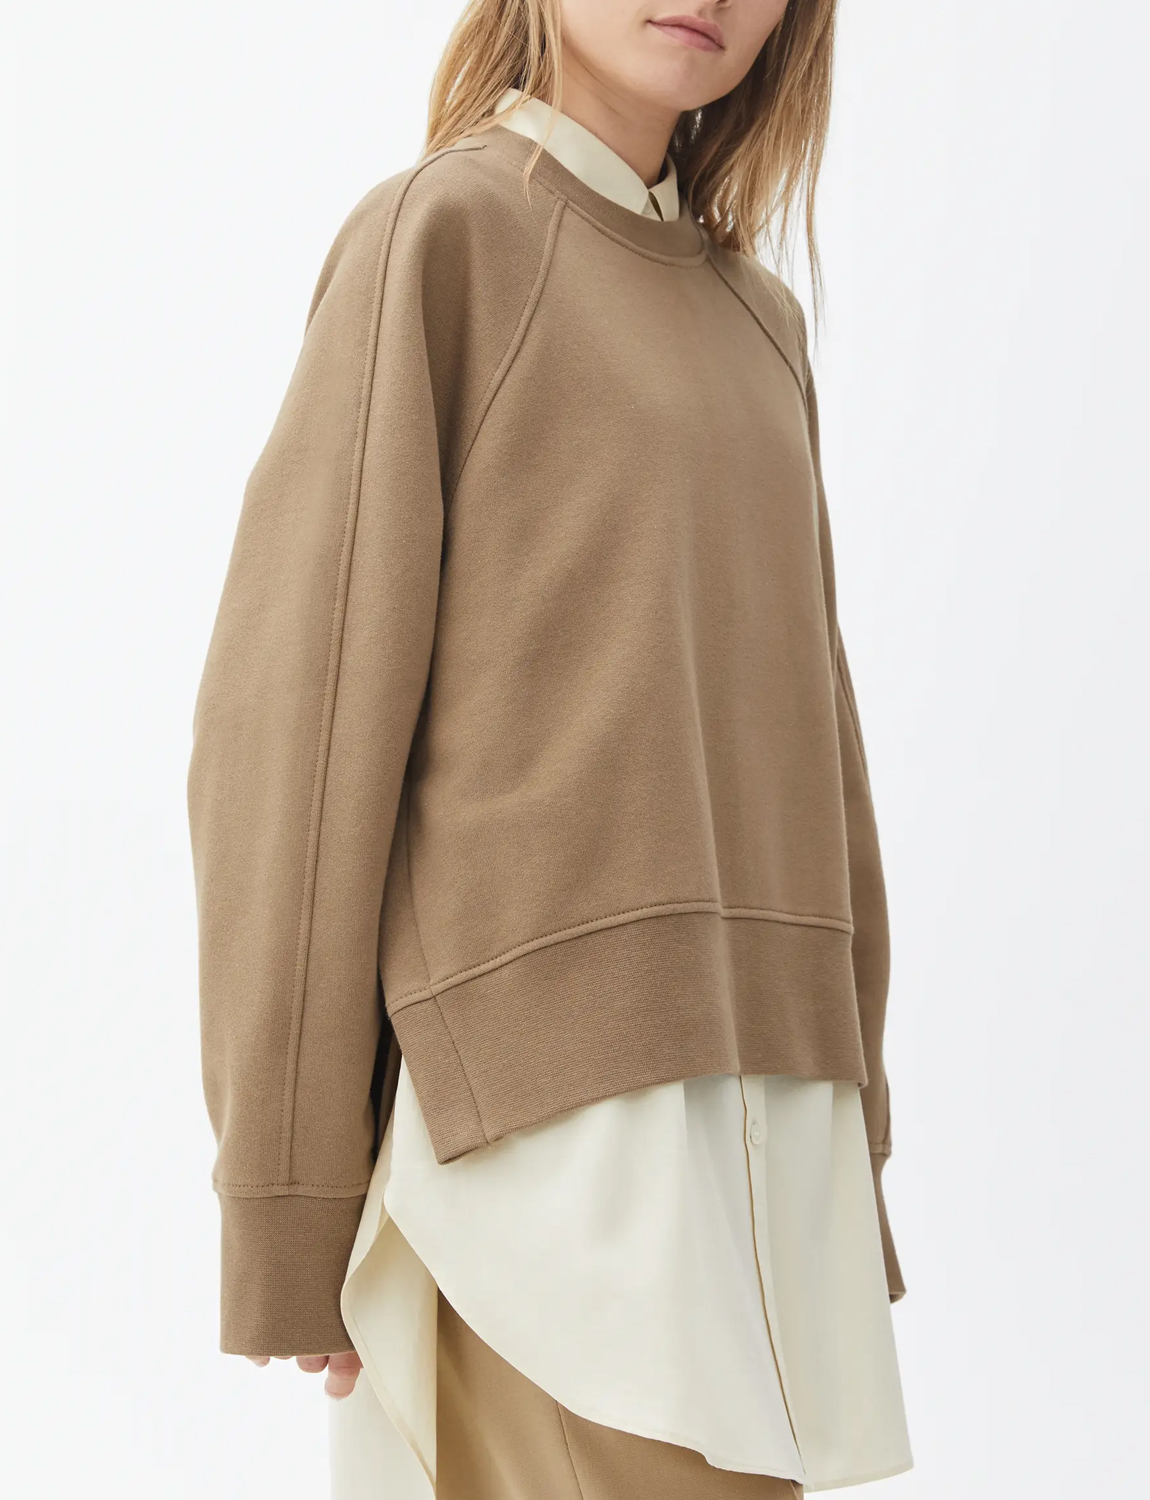 boxy brown oversized jumper